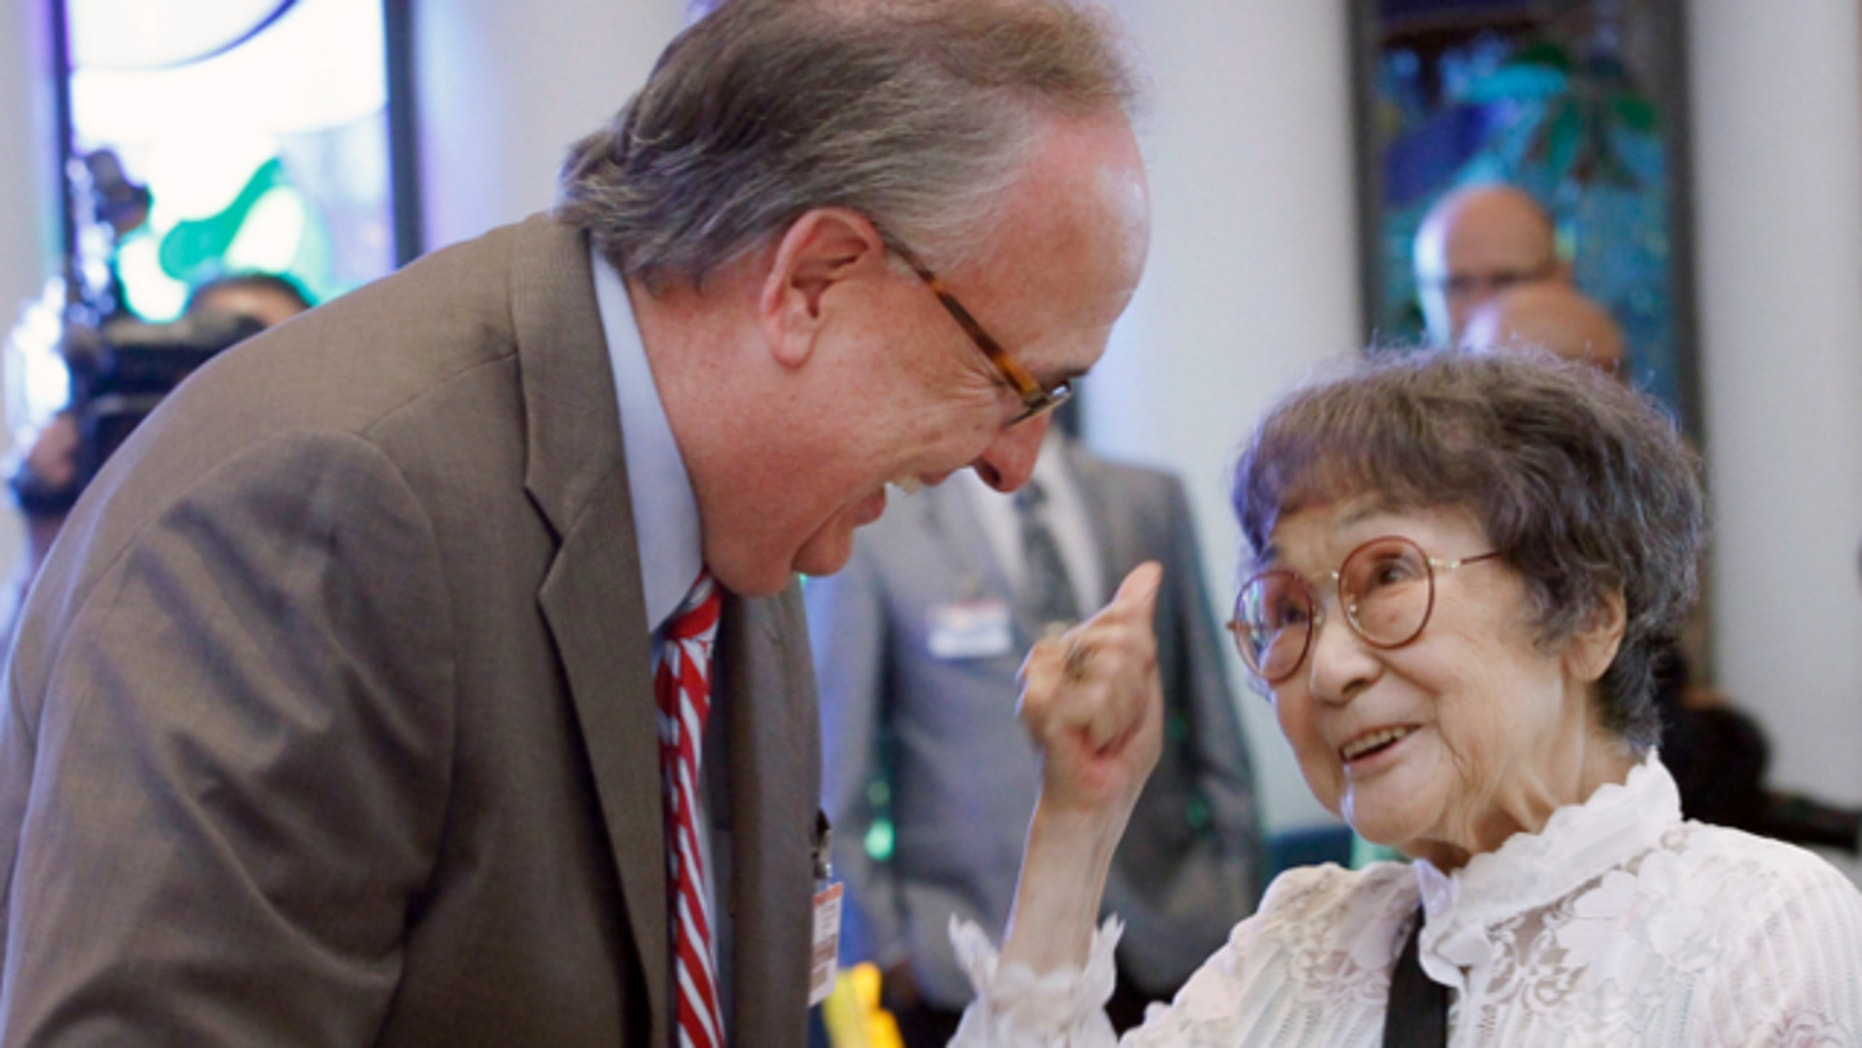 June 28, 2013: Survivor of atomic blast in Hiroshima, Kaz Sueishi, right, President of the American Society of Hiroshima-Nagasaki A-bomb Survivors, is greeted by Michael Hunn, Senior Vice President/ Chief Executive of Providence Health & Services, during a press conference in Torrance, Calif.